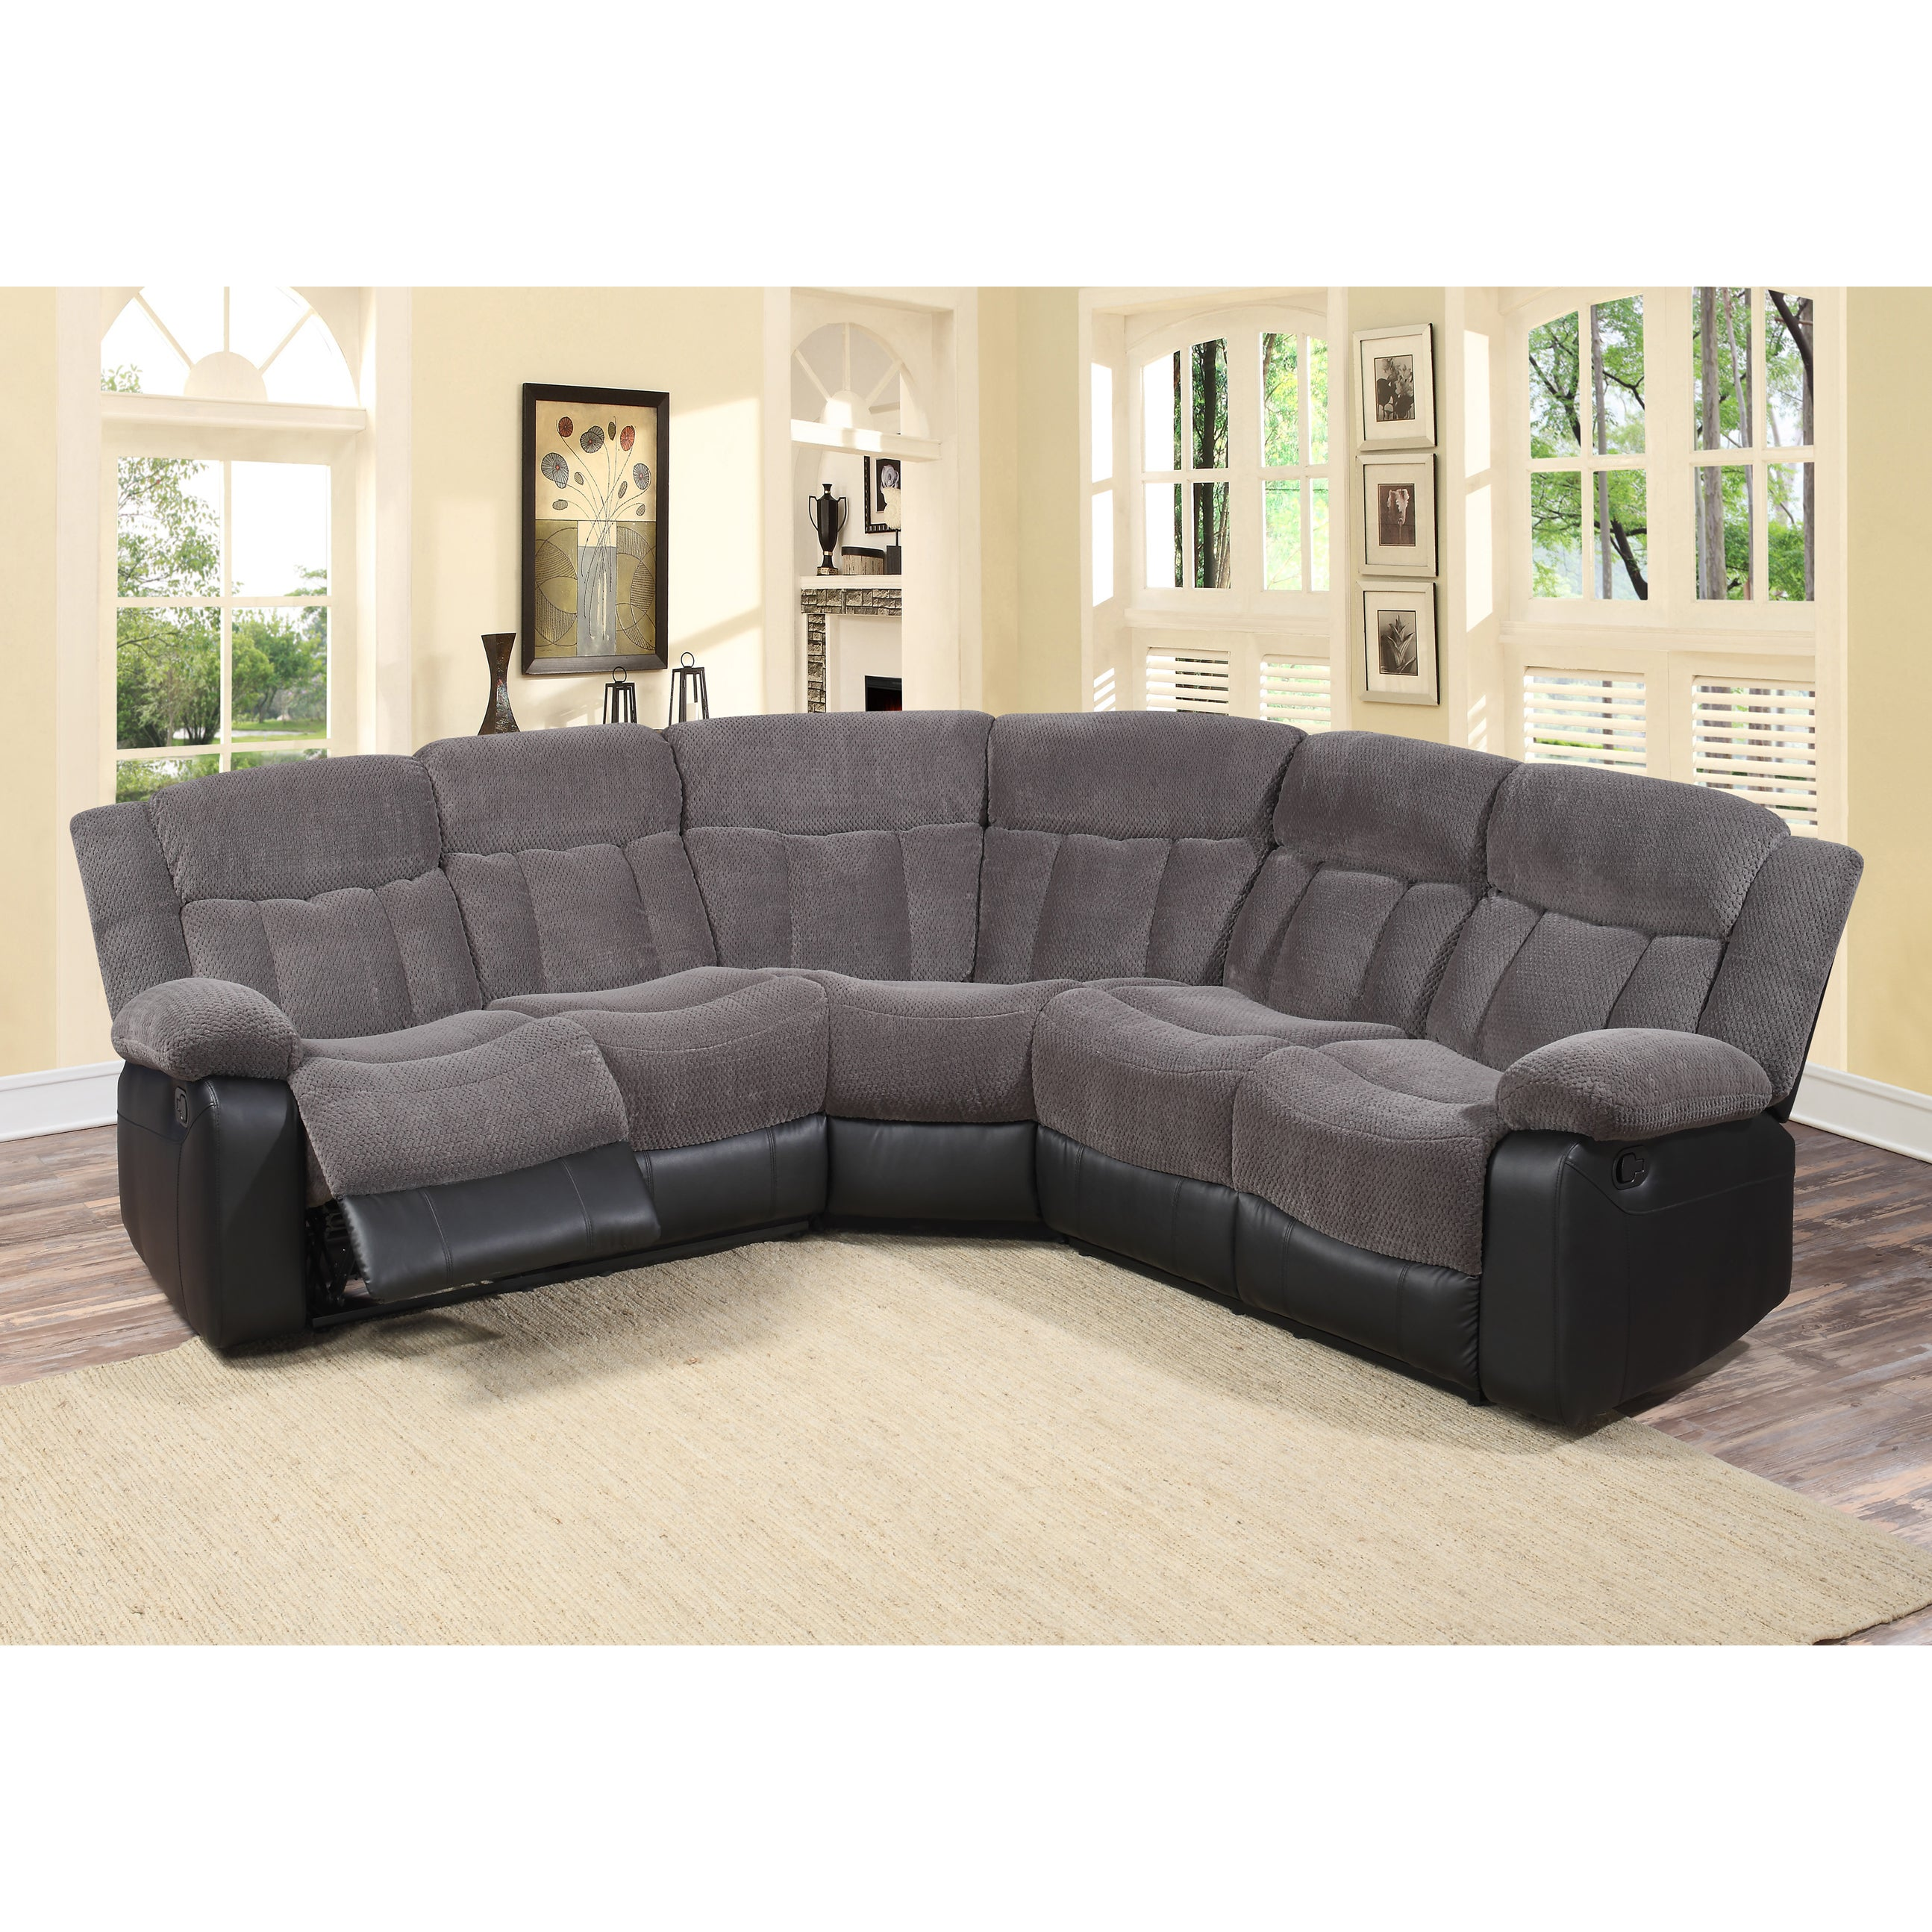 Sensational Tonnie 3 Piece Grey Fabric And Faux Leather Reclining Sectional Living Room Sofa Pdpeps Interior Chair Design Pdpepsorg